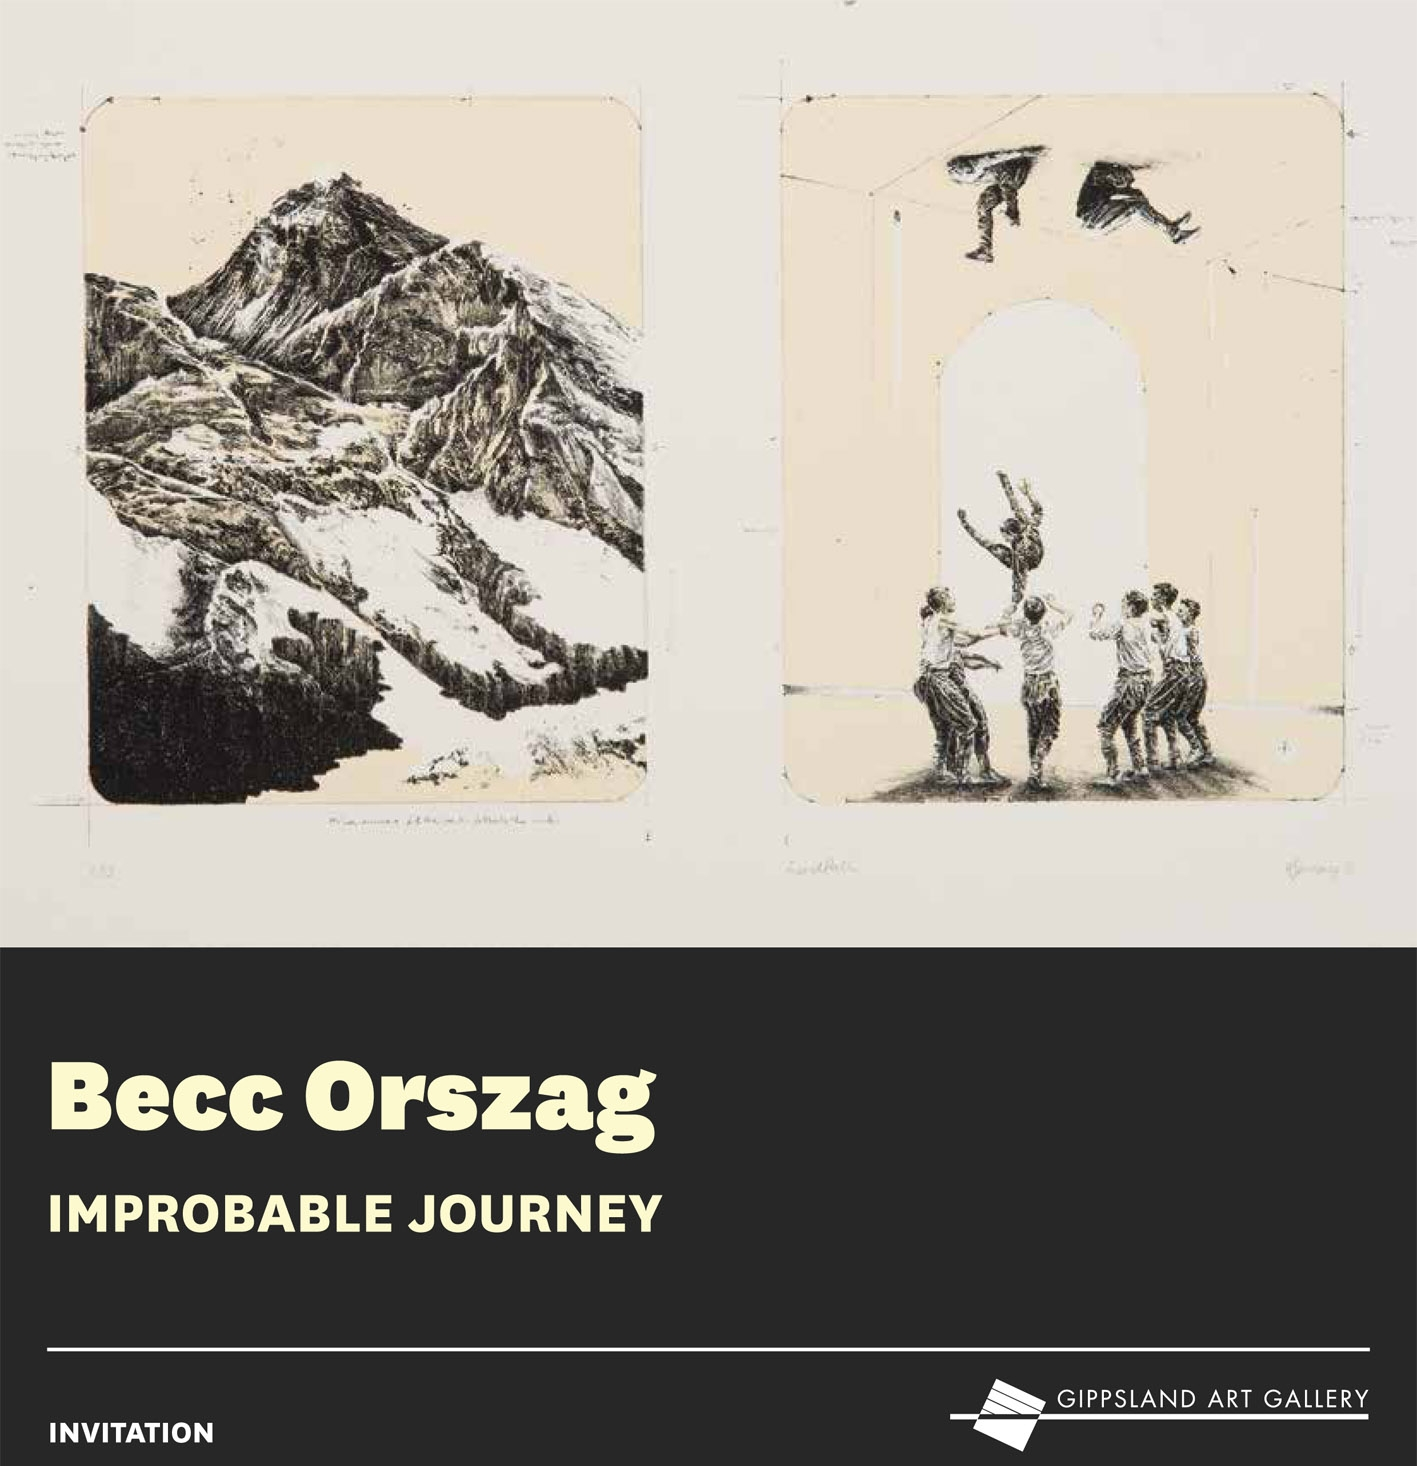 becc-orszag-invitation_catalogue_email-1